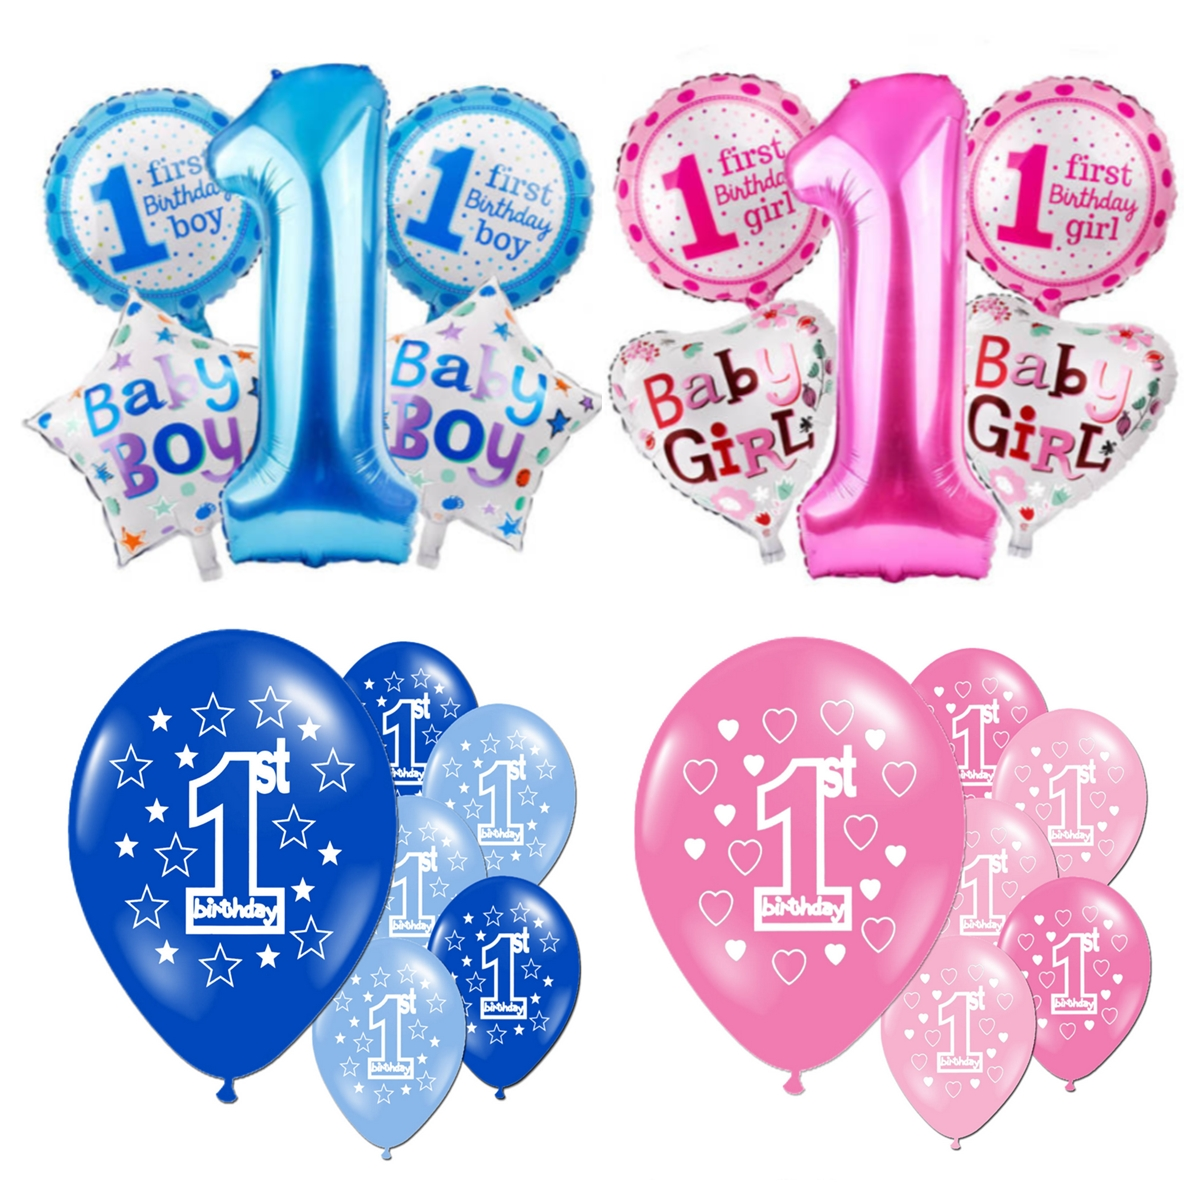 Happy Age 1st Birthday Balloon Helium Number Foil Balloons Baby Shower Party Decor